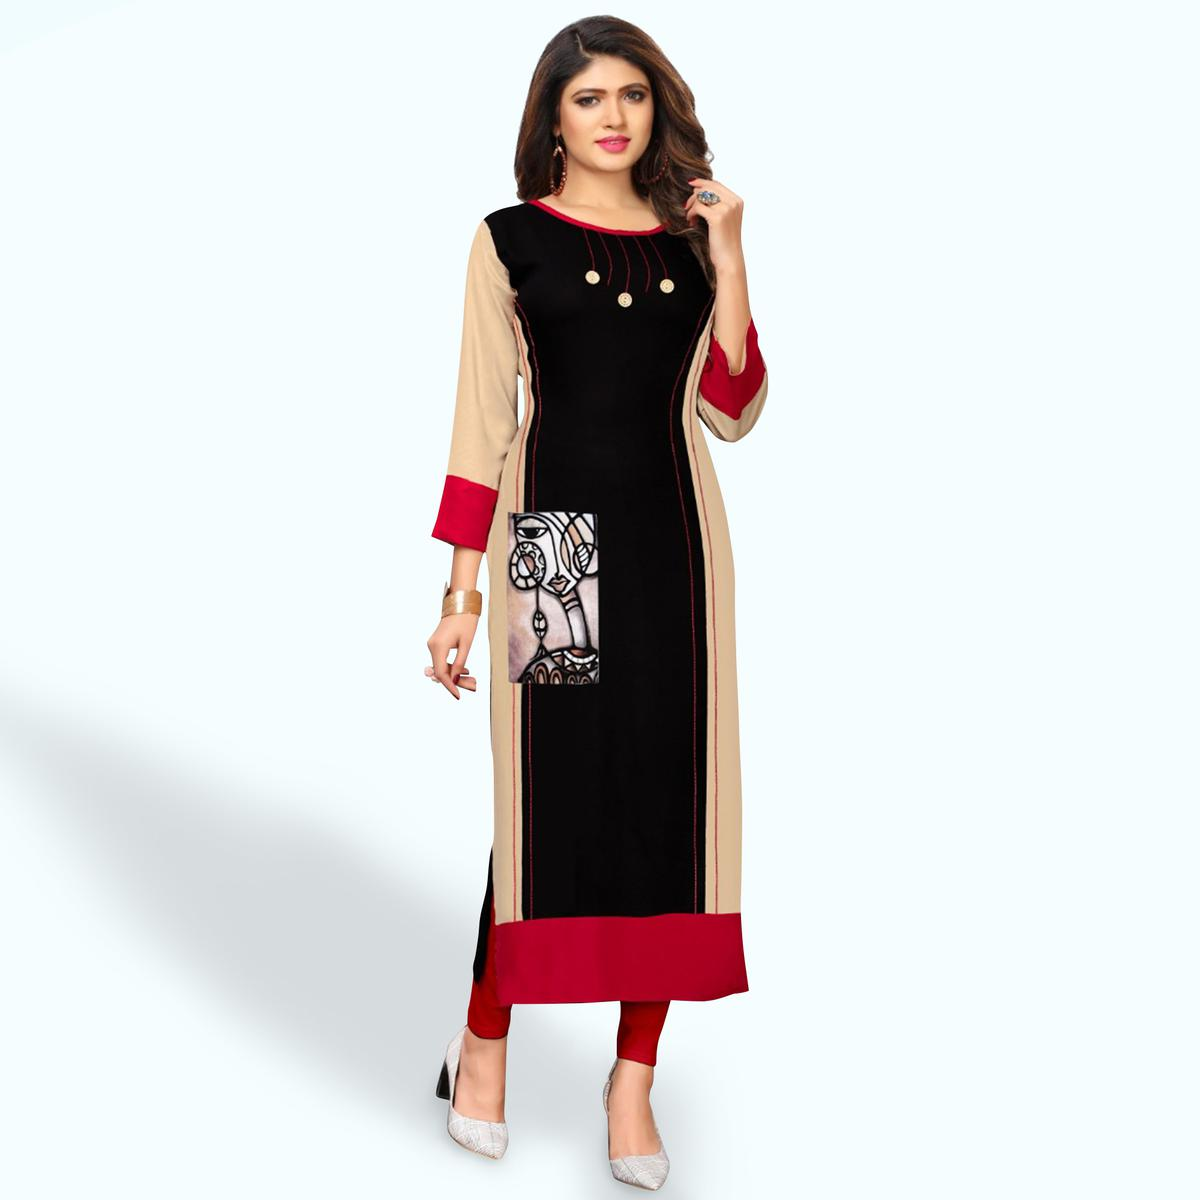 Entrancing Black-Beige Colored Party Wear Printed Rayon Kurti